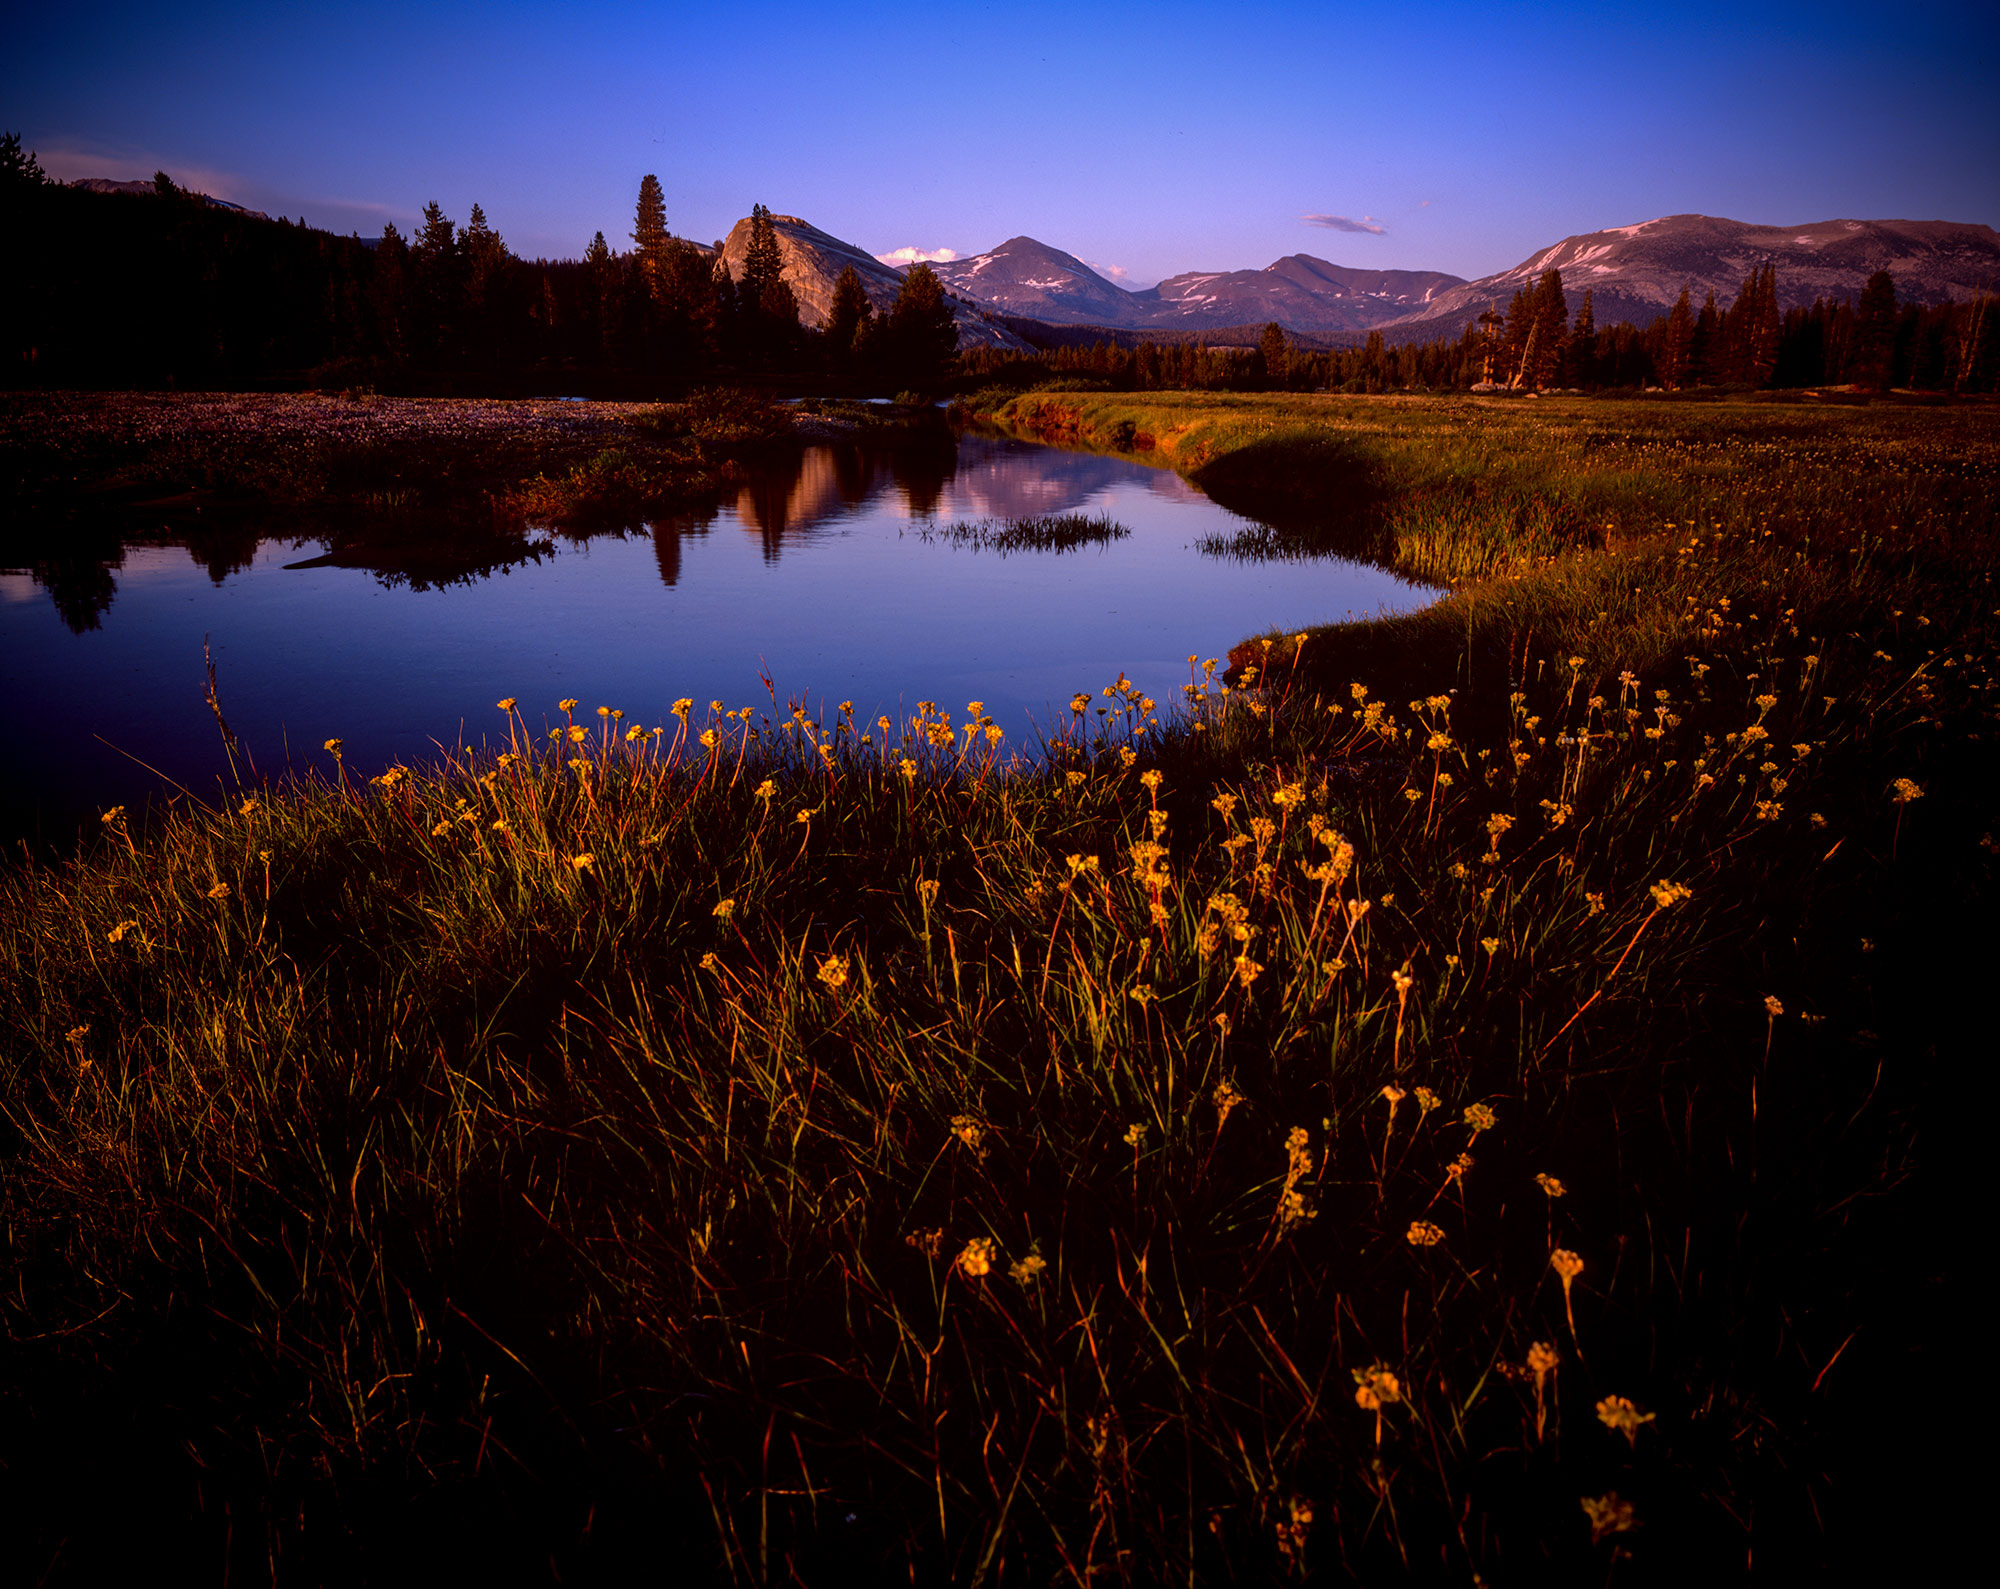 Tuolomne Meadows, Yosemite National Park, California